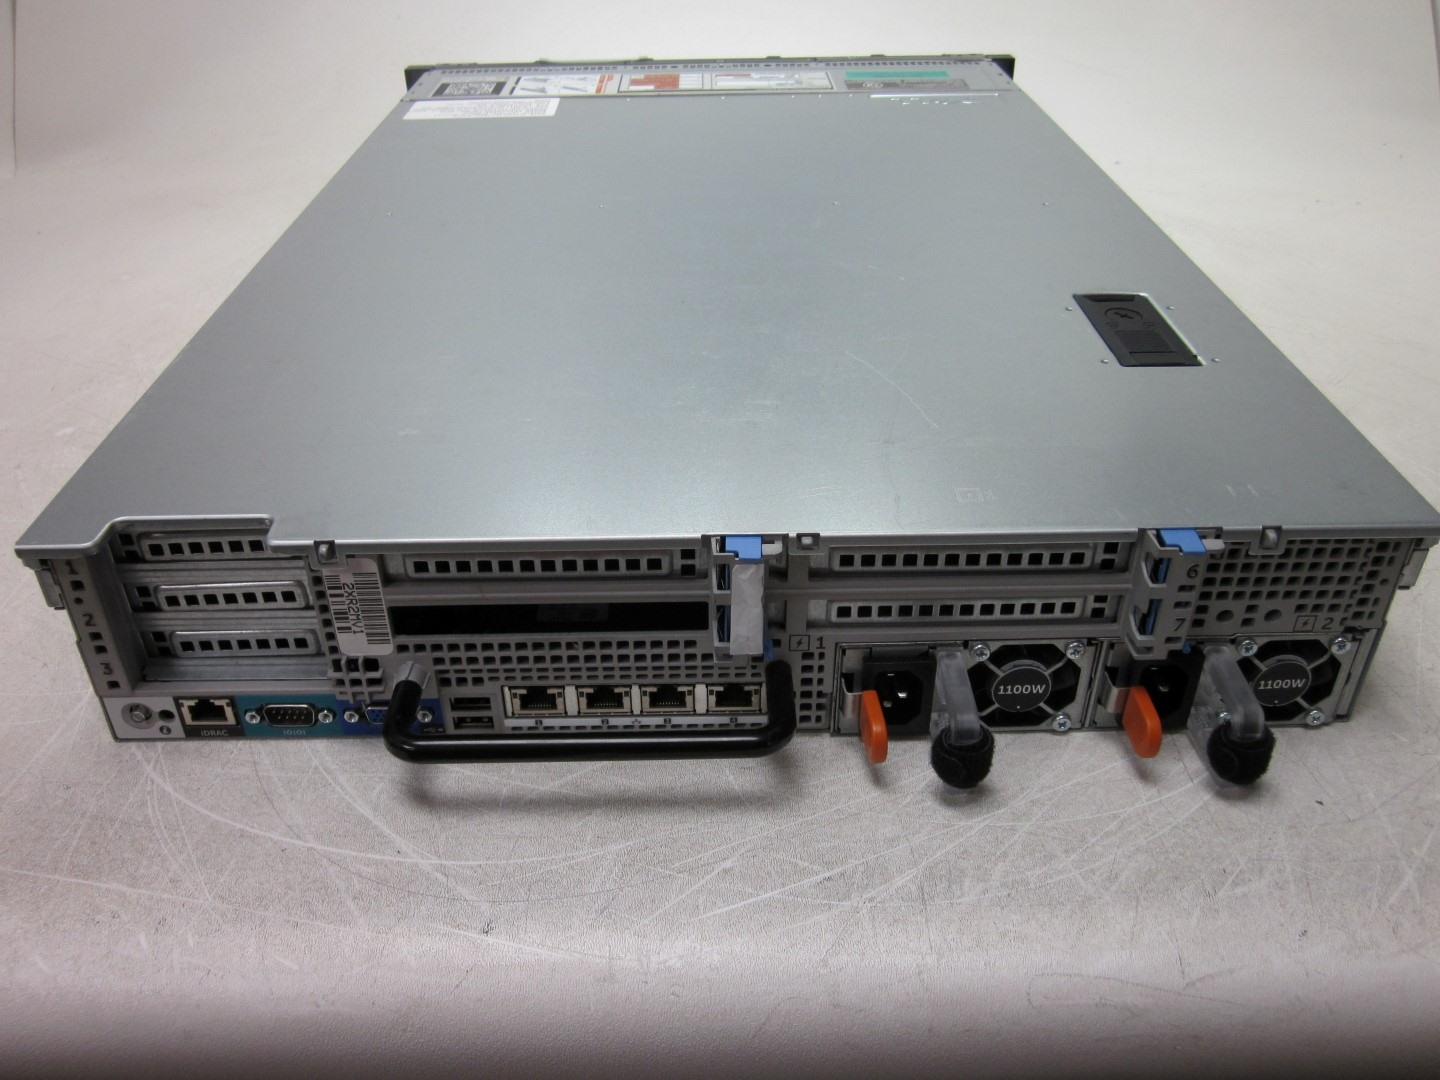 Details about Dell PowerEdge R720 2U Server Dual Xeon E5-2660 2 20GHz 128GB  Boots 2x 1100w PSU